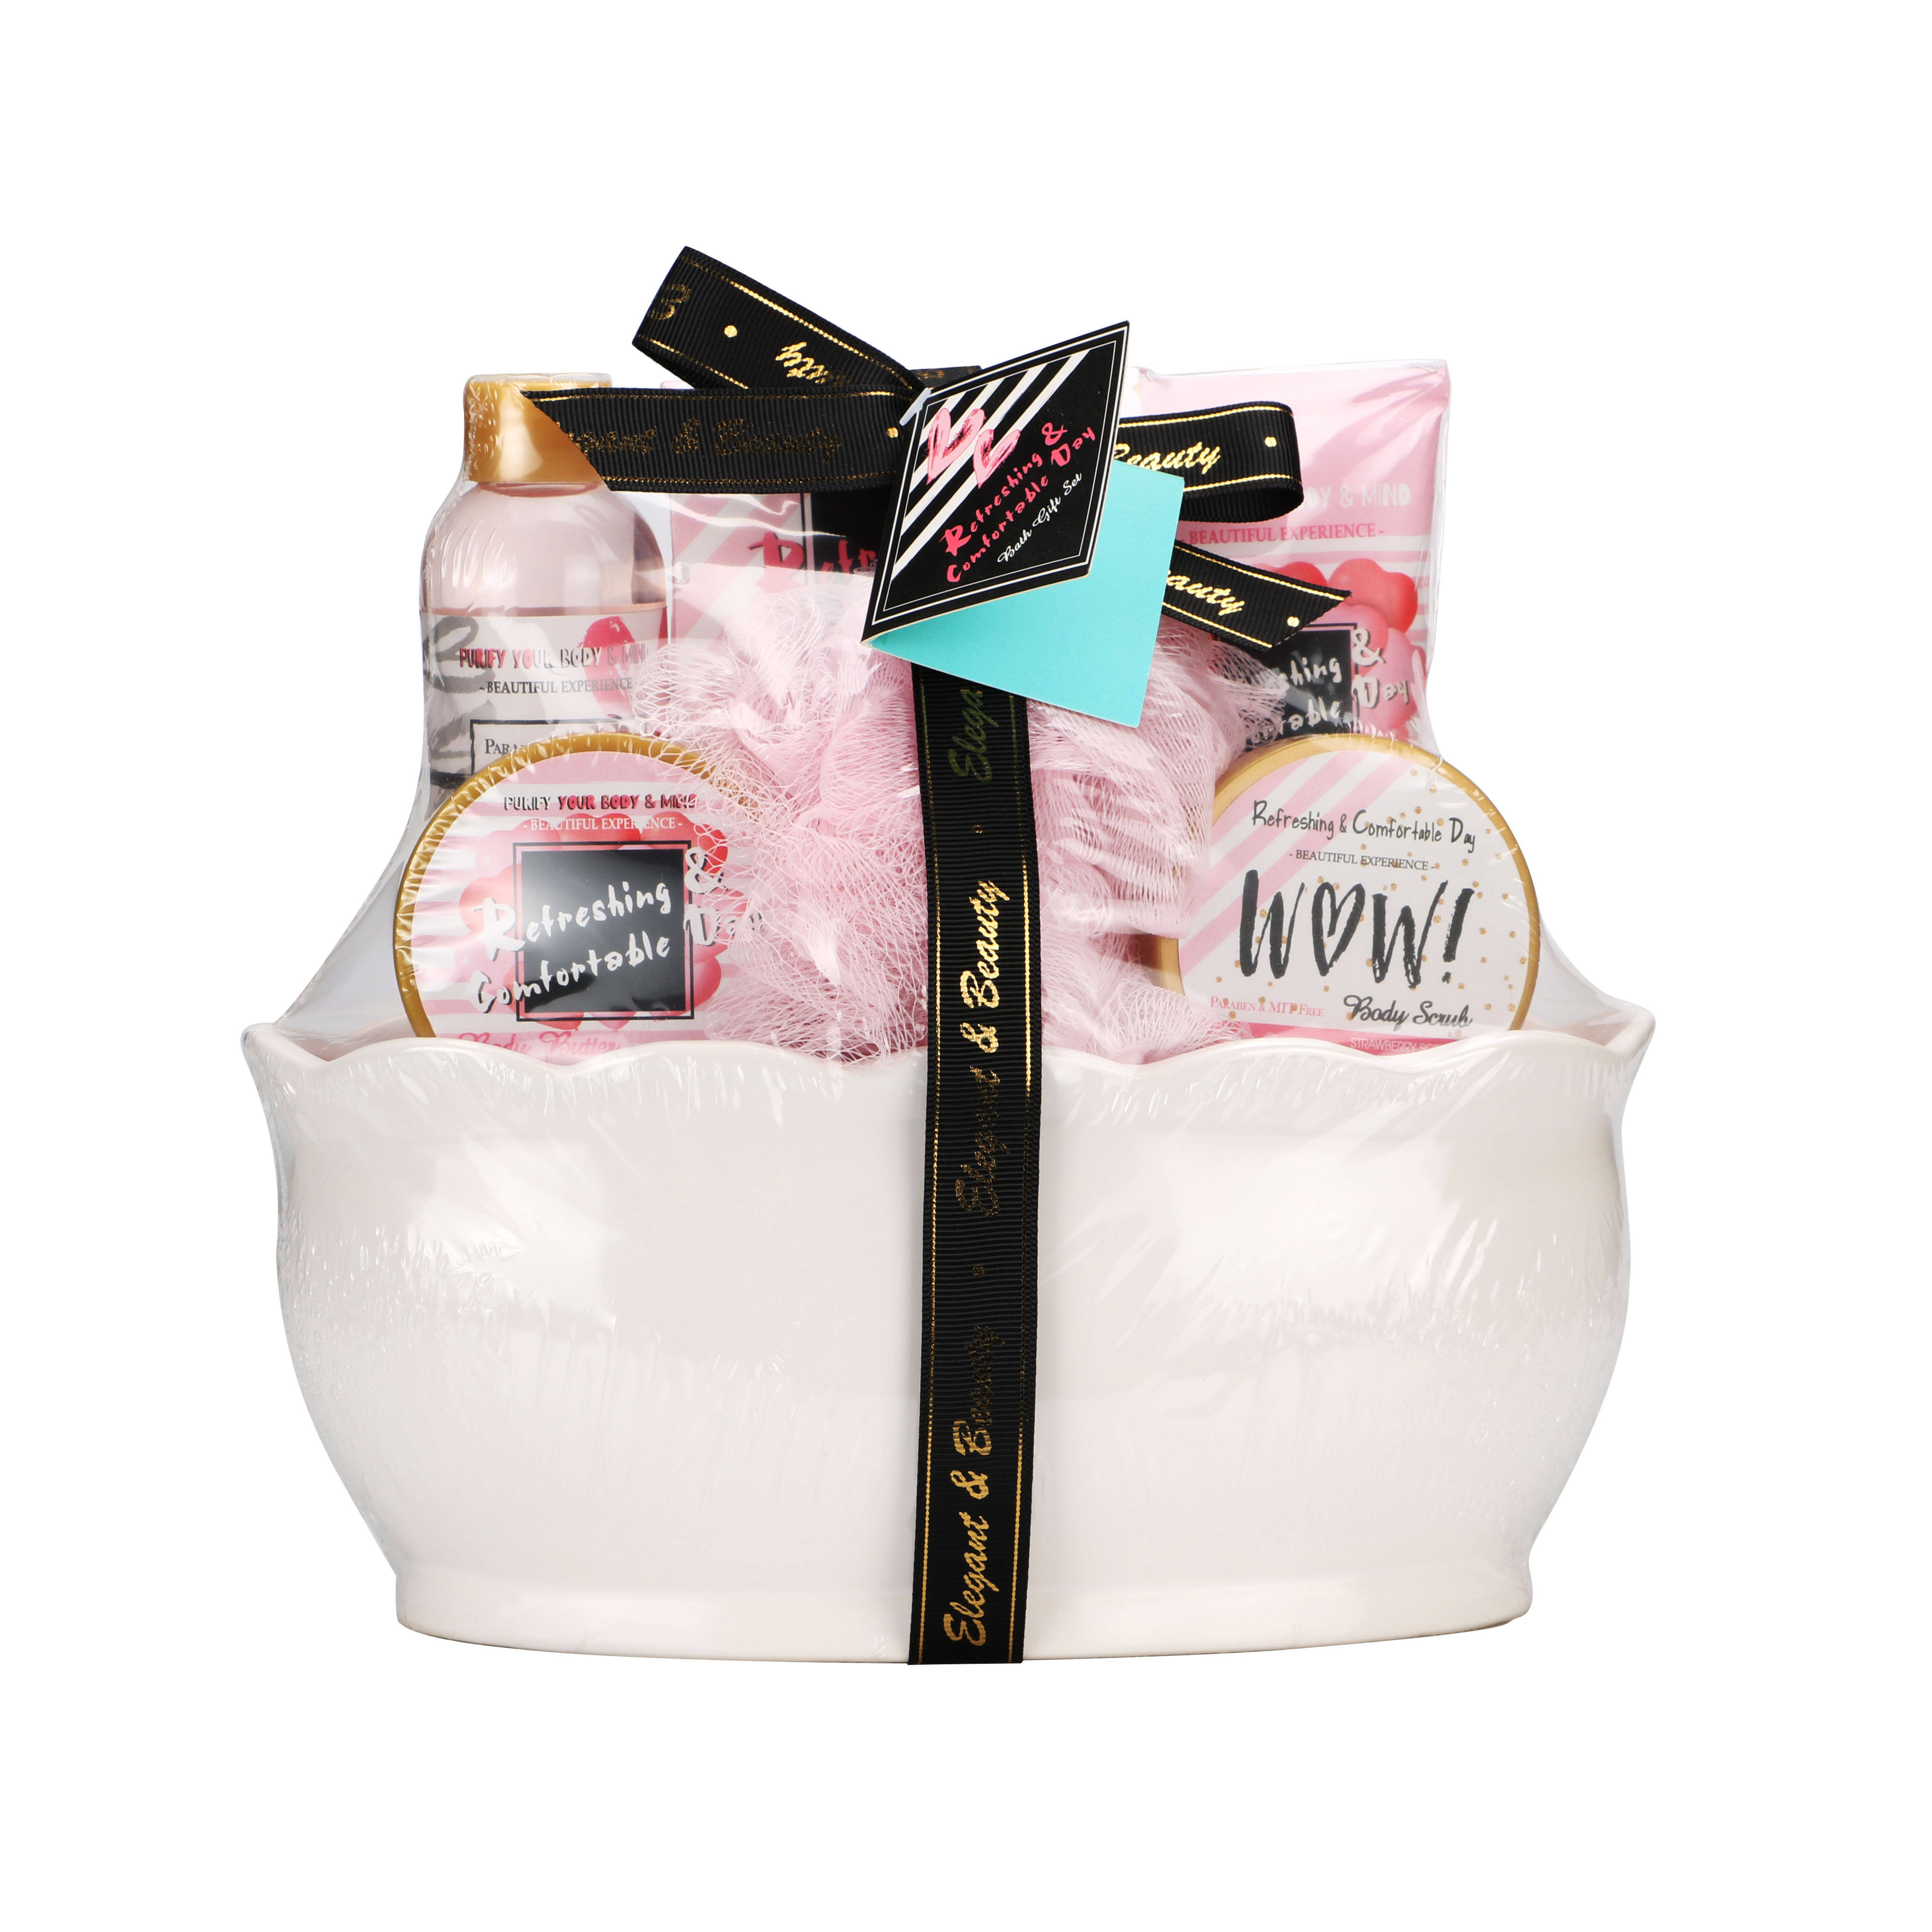 Bath Gift Basket ceramics Spa Gift Set Bath and Body Set with Bulgaria Rose Garden Fragrance Includes Bath Puff Body Butter